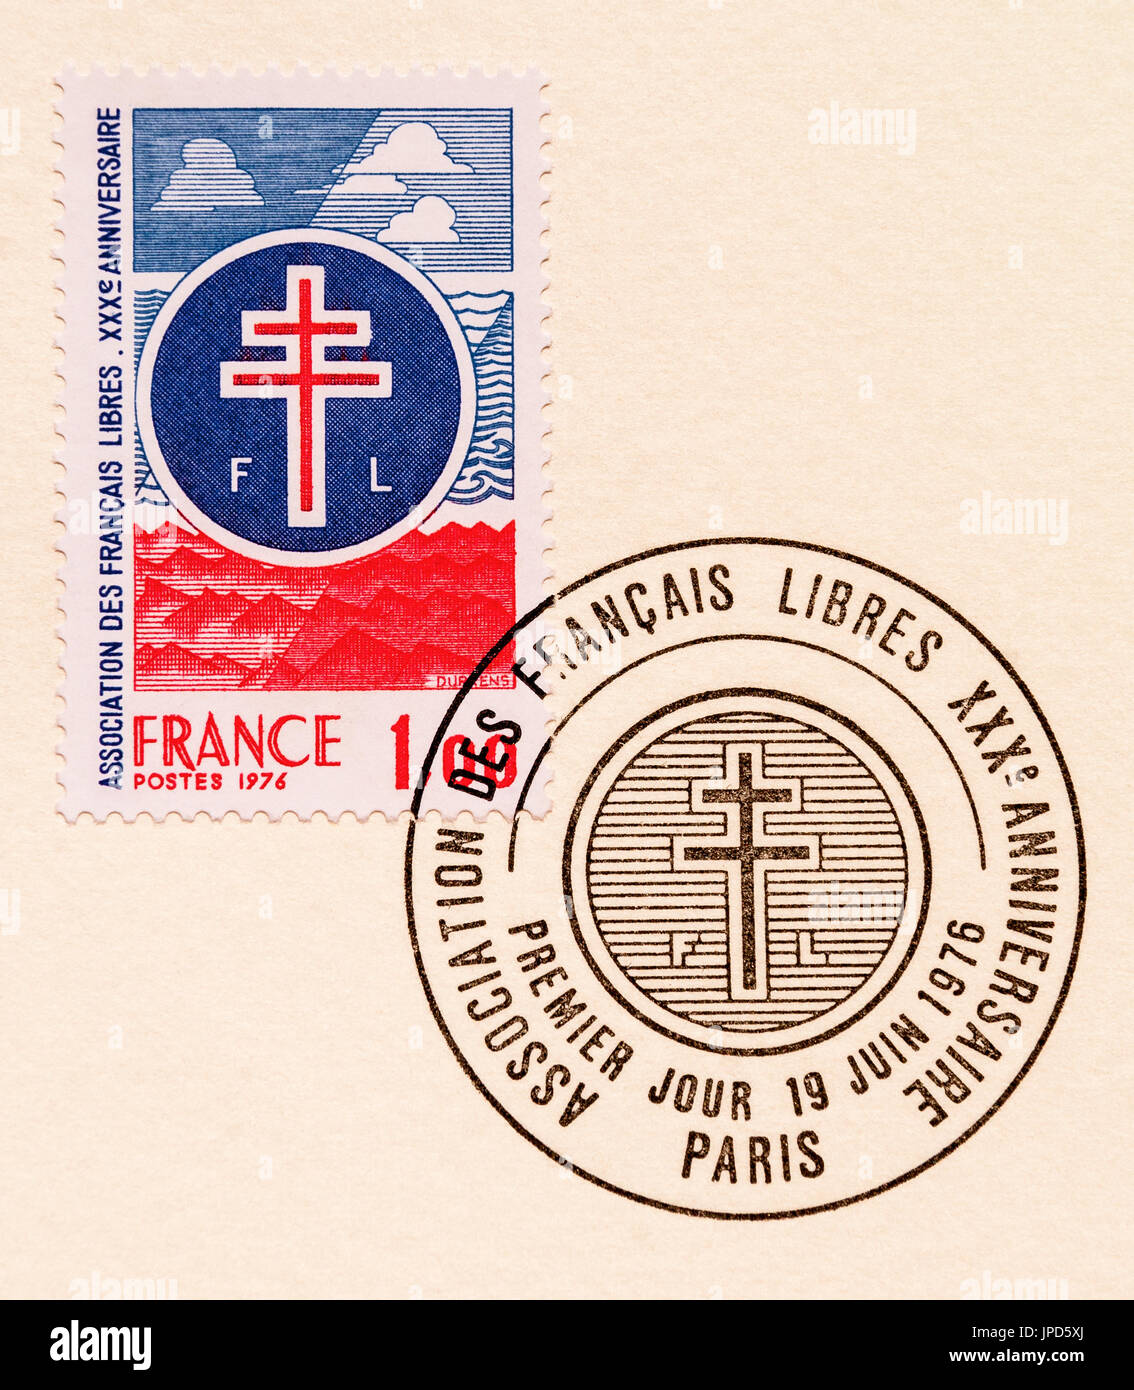 First day postmark on French stamp - Free French. - Stock Image